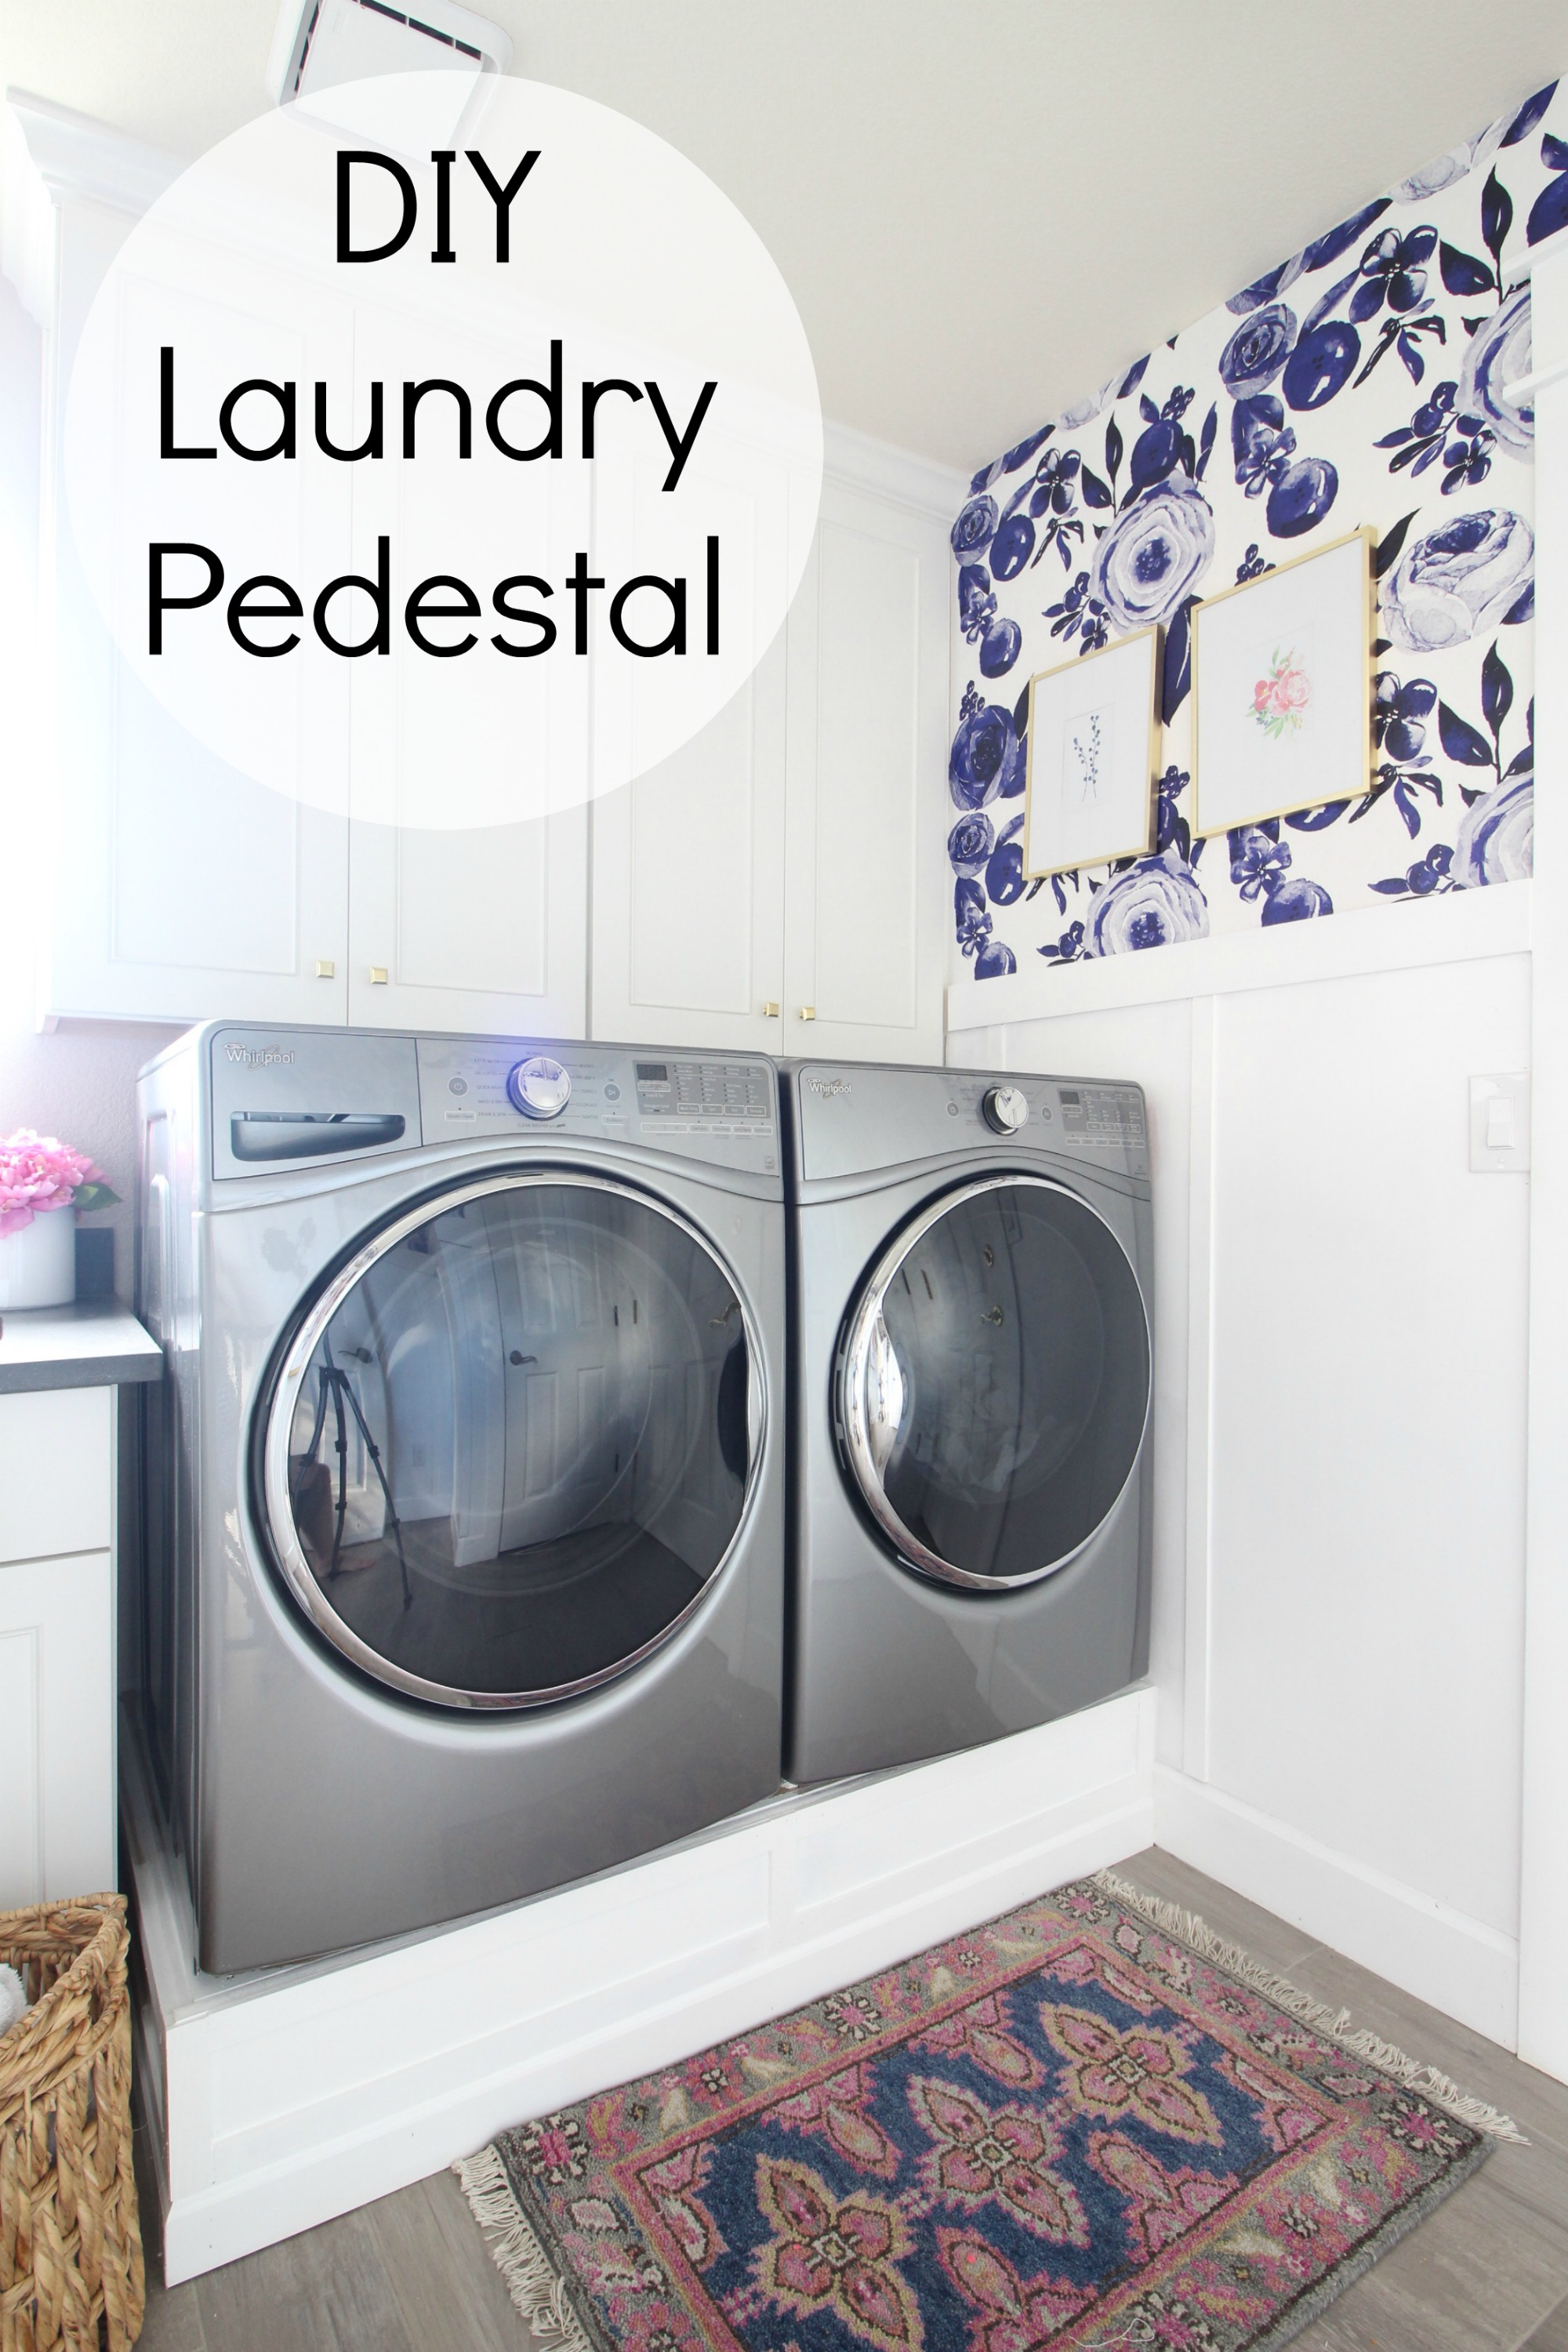 ideas on laundry pedestal handyman with room great renovation washer diy home